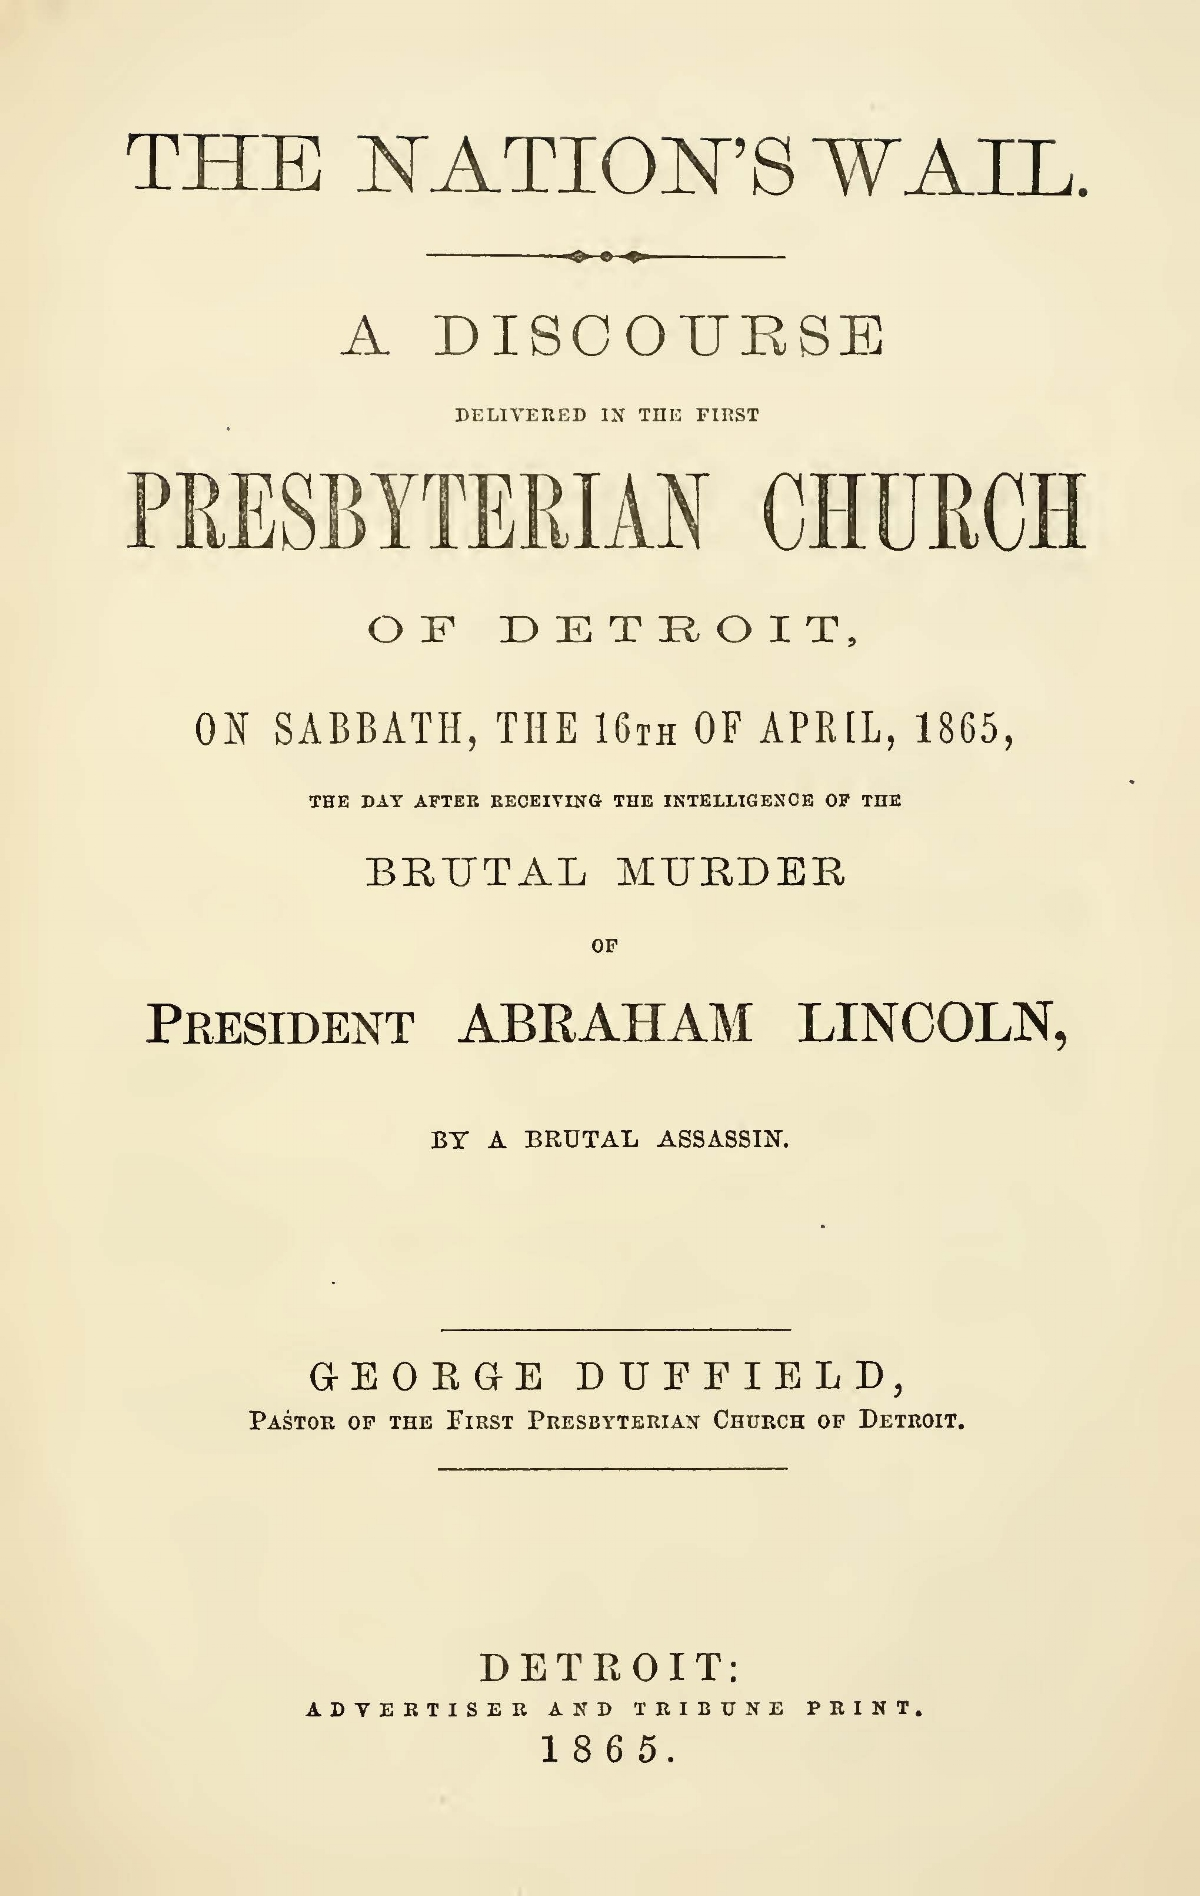 Duffield, IV, George, The Nation's Wail Title Page.jpg